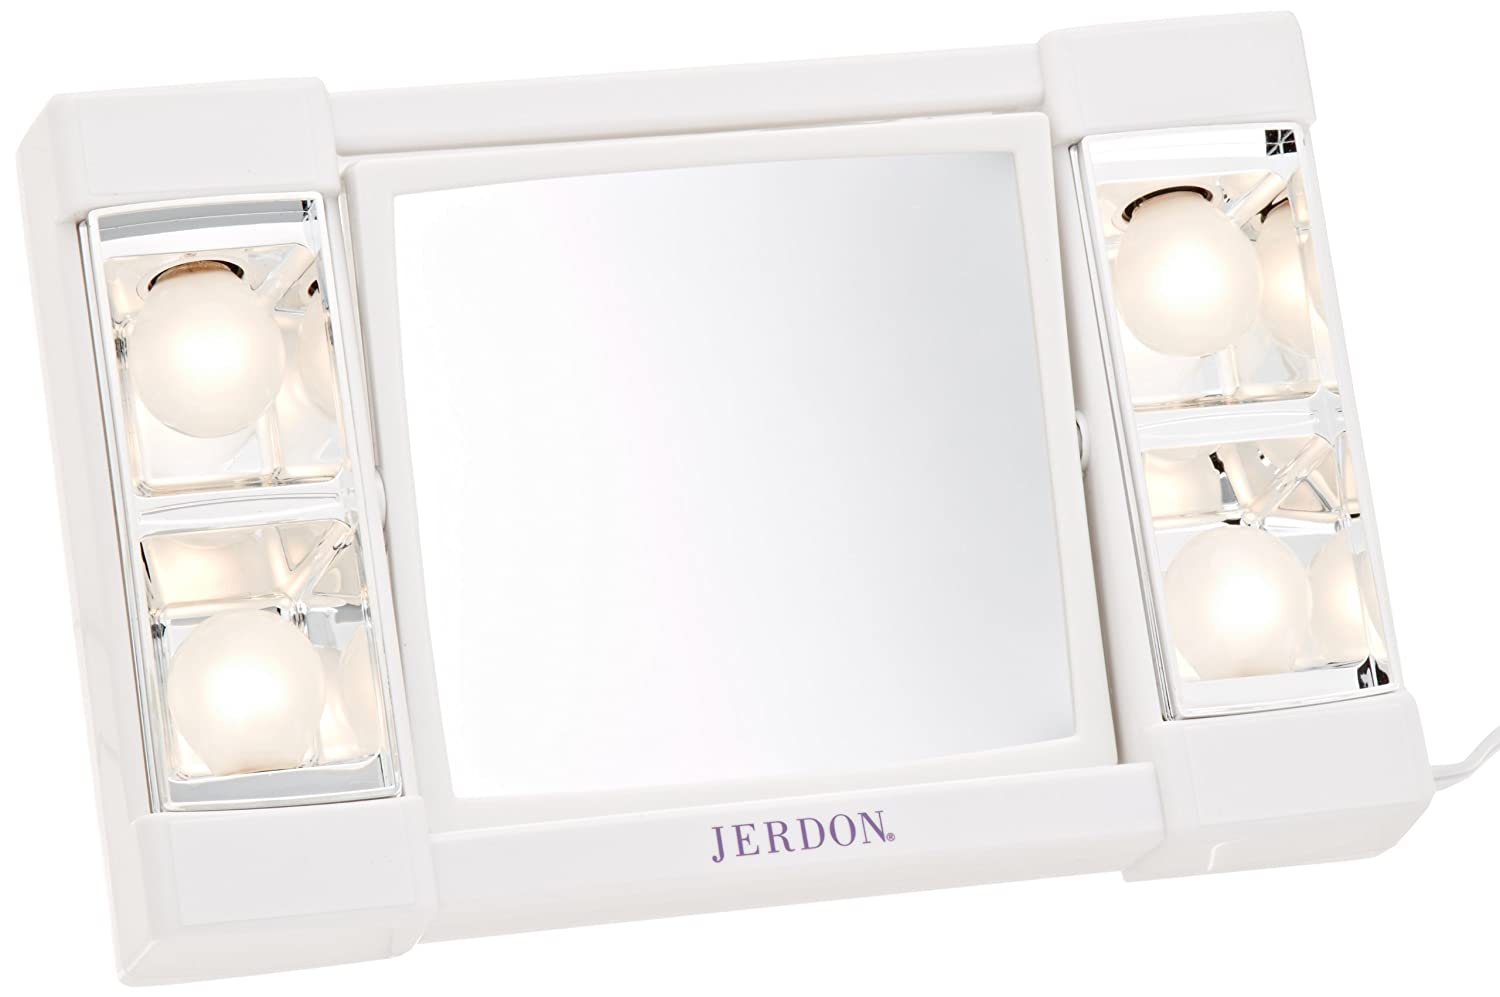 Jerdon J1010 6-Inch Portable Tabletop Two-Sided Swivel Lighted Makeup Mirror with 3x Magnification, White Finish A-028-61-S-V-10-456